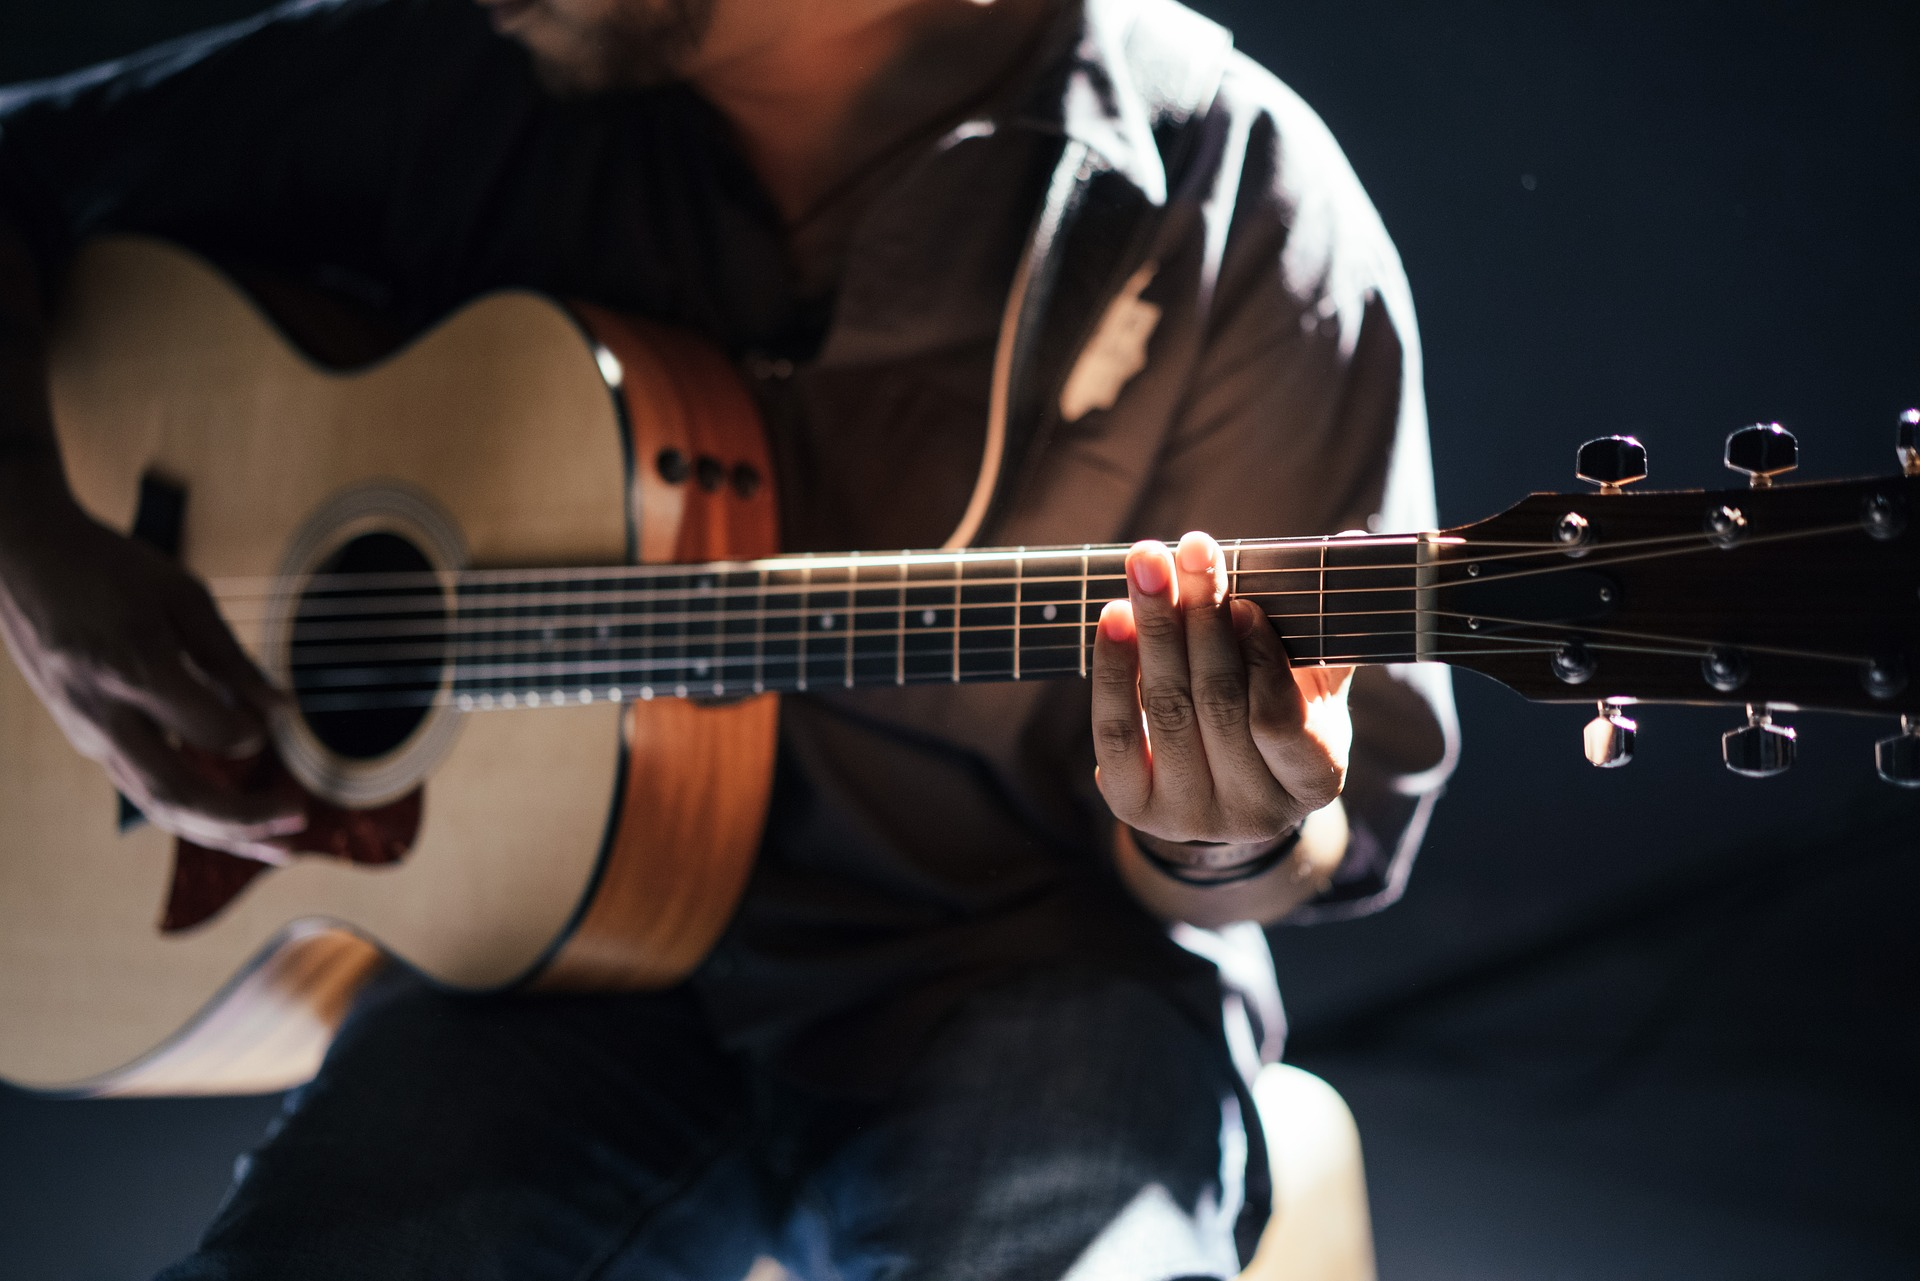 A person is holding a guitar and harmonizing it using the open d tuning